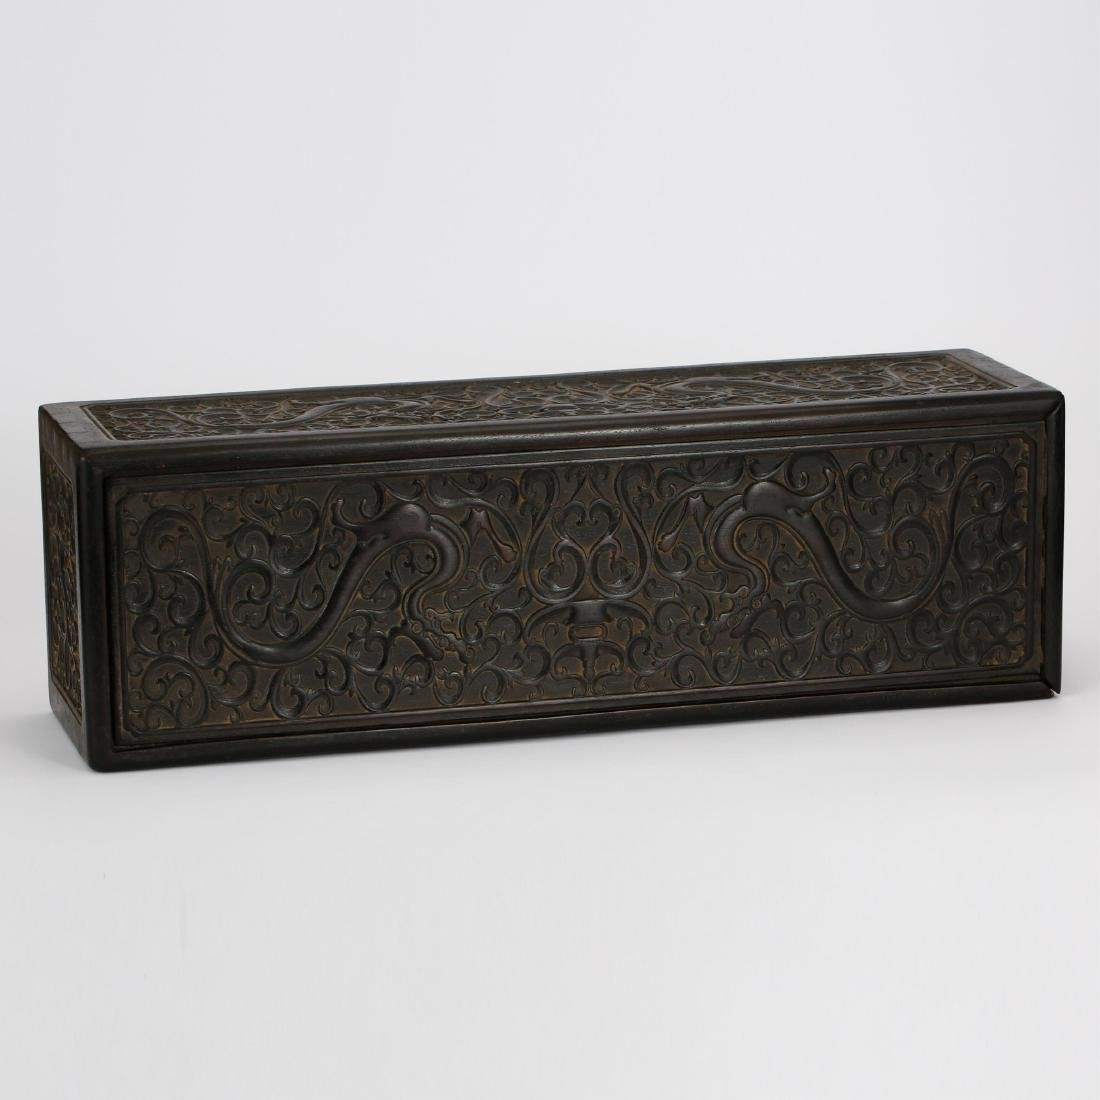 CHINESE ZITAN WOOD SCROLL COVER BOX - 5